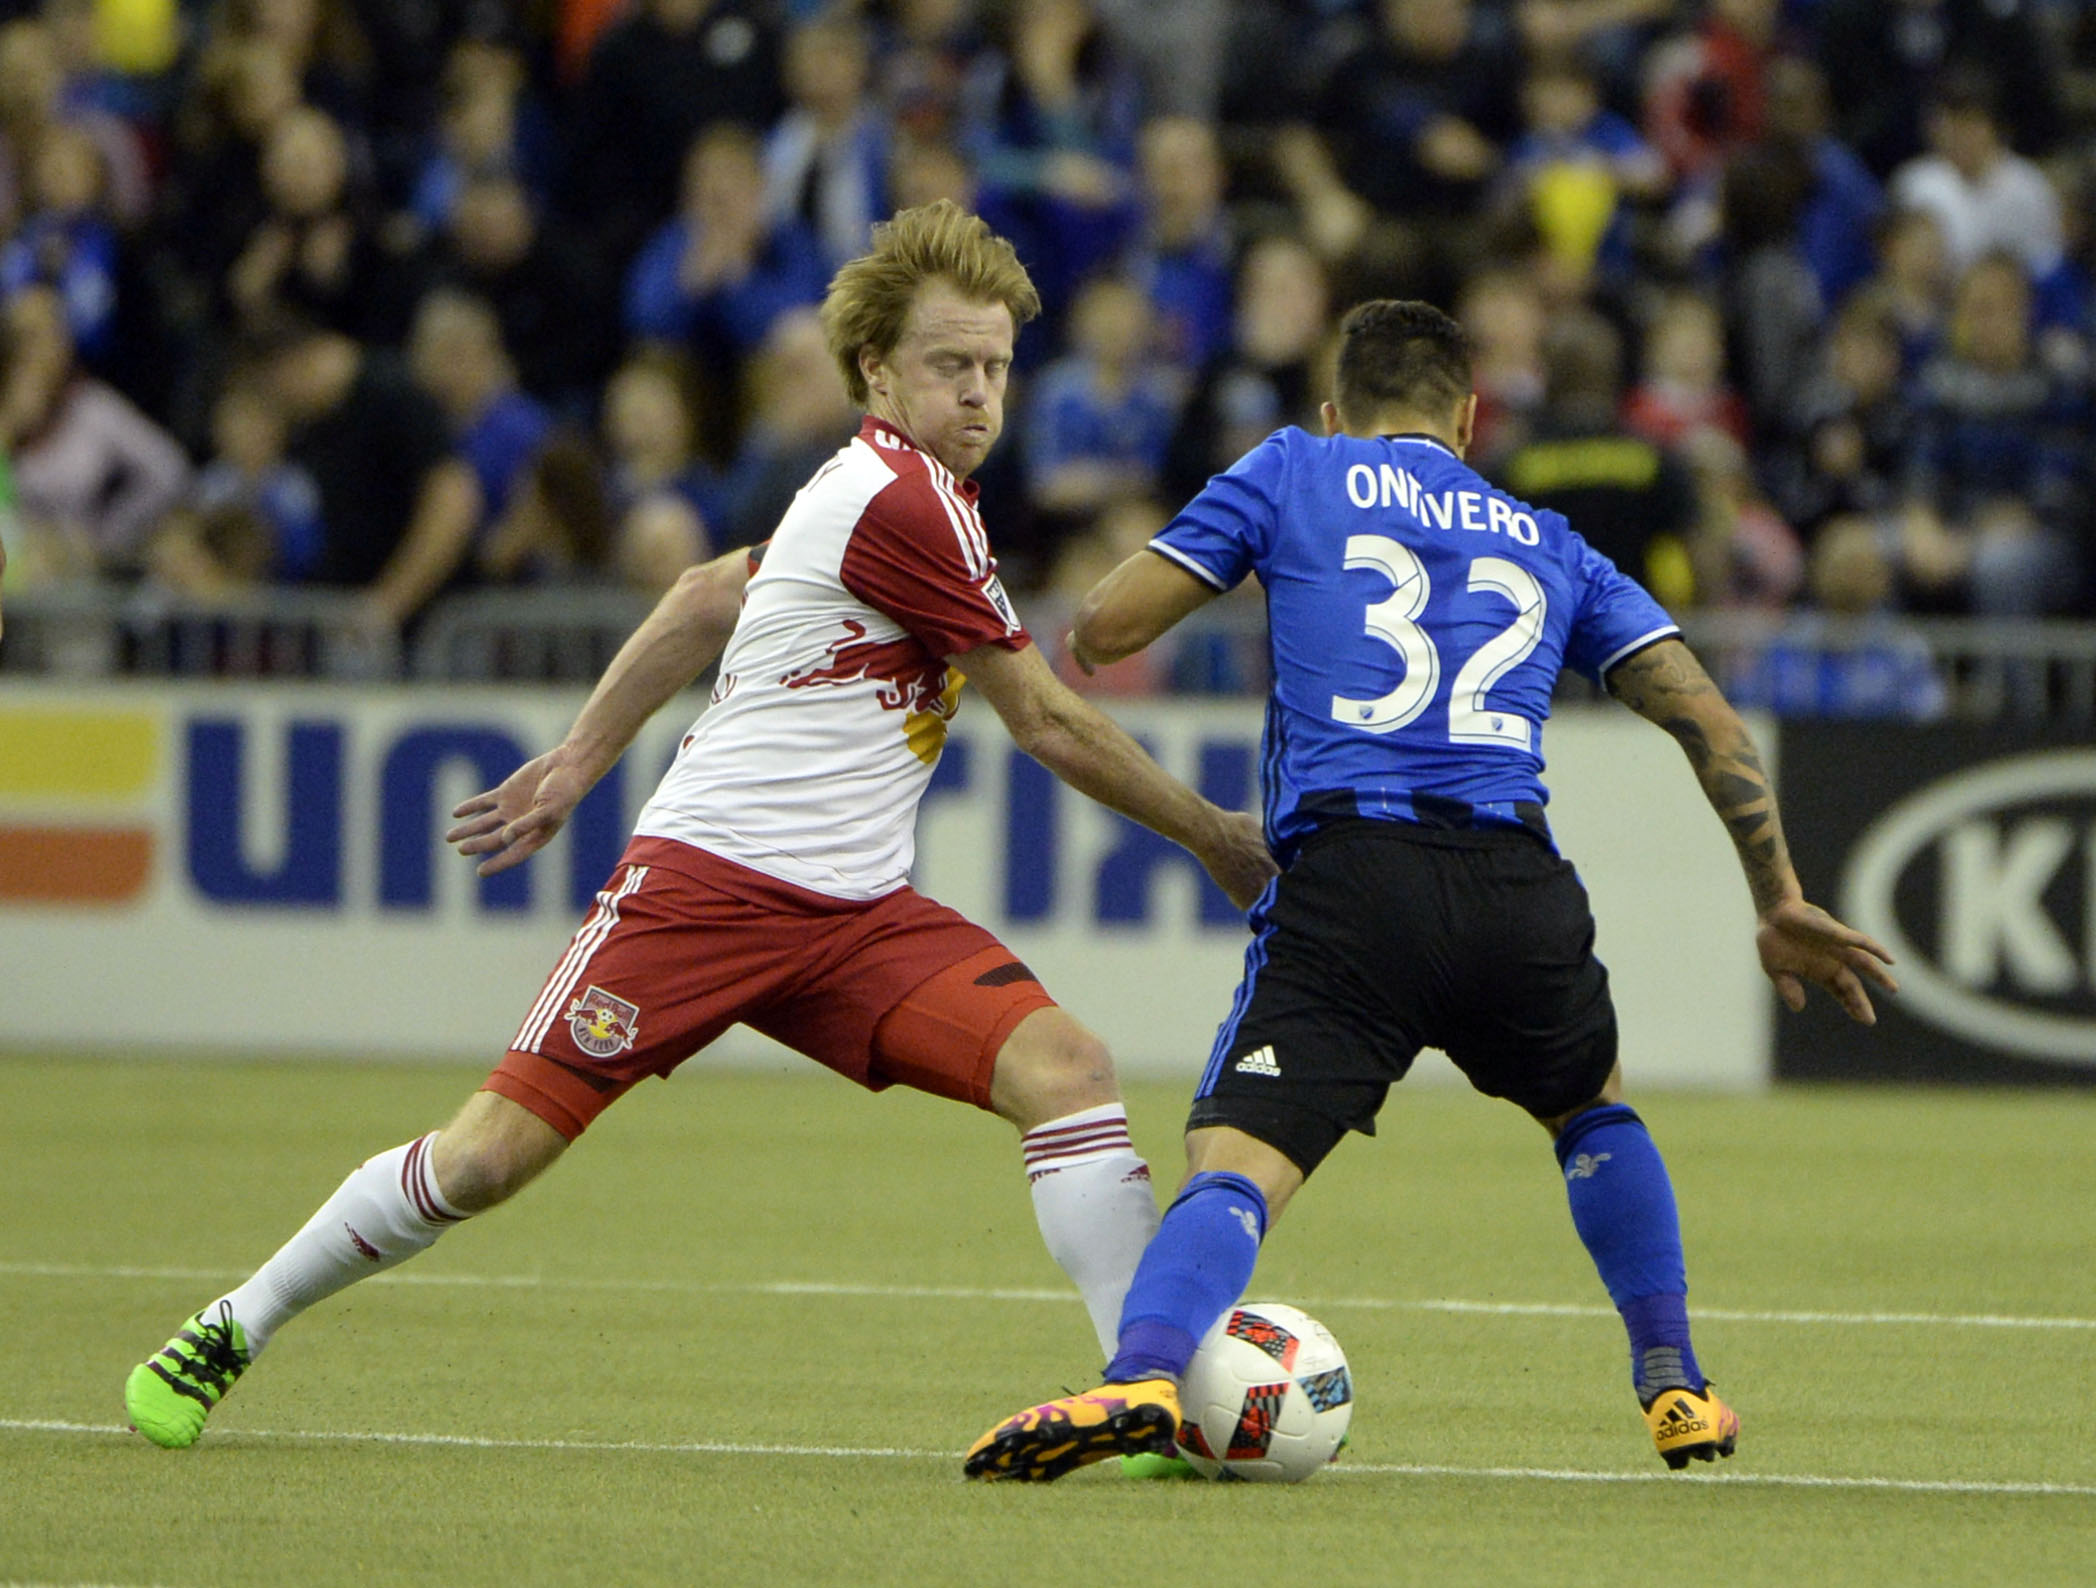 Ontivero looks to take on a defender in IMFC's 3-0 win over NYRB on Saturday.